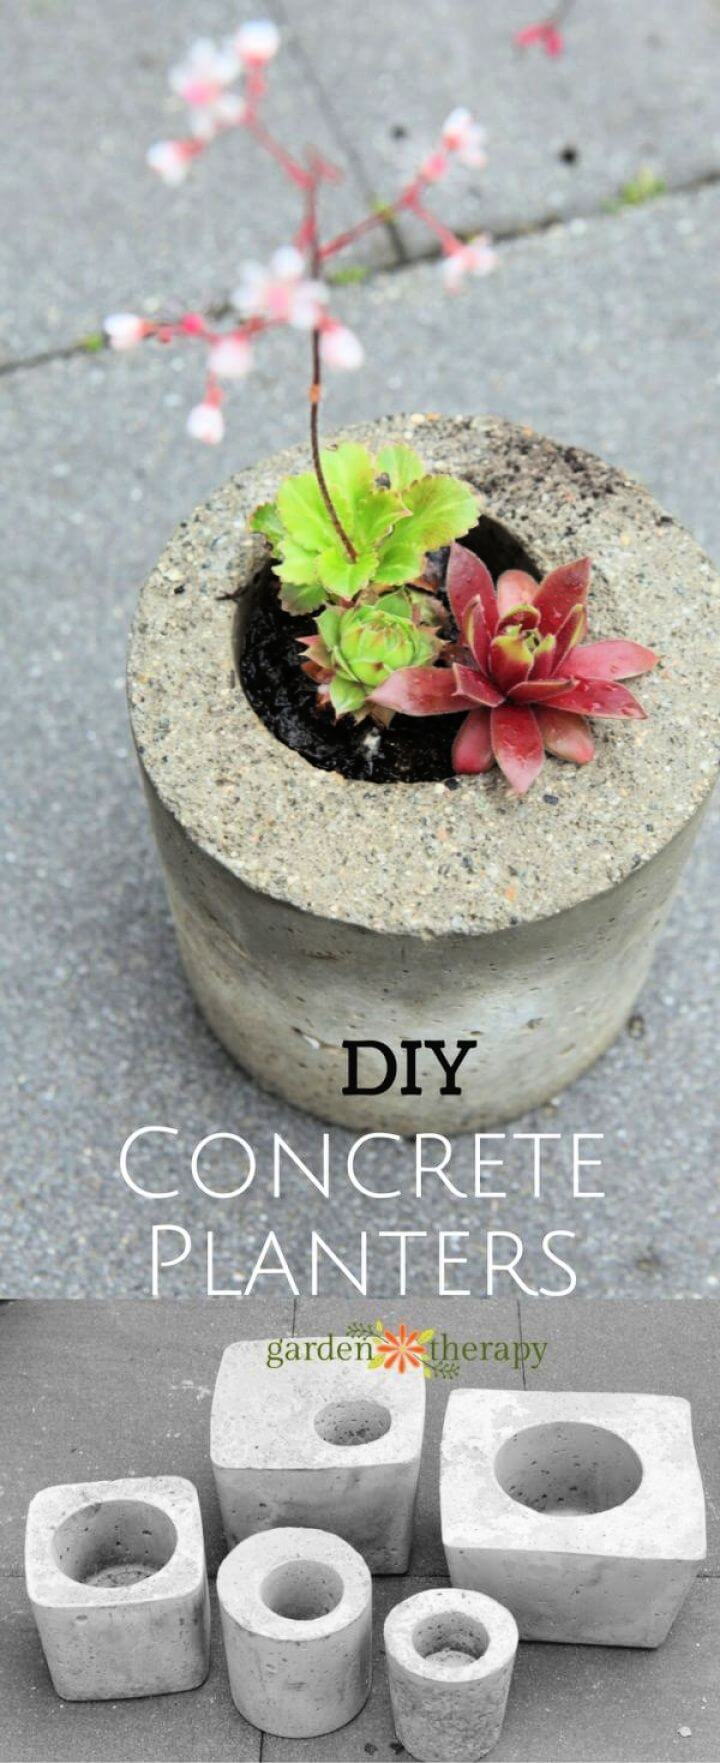 How to Make Concrete Planters